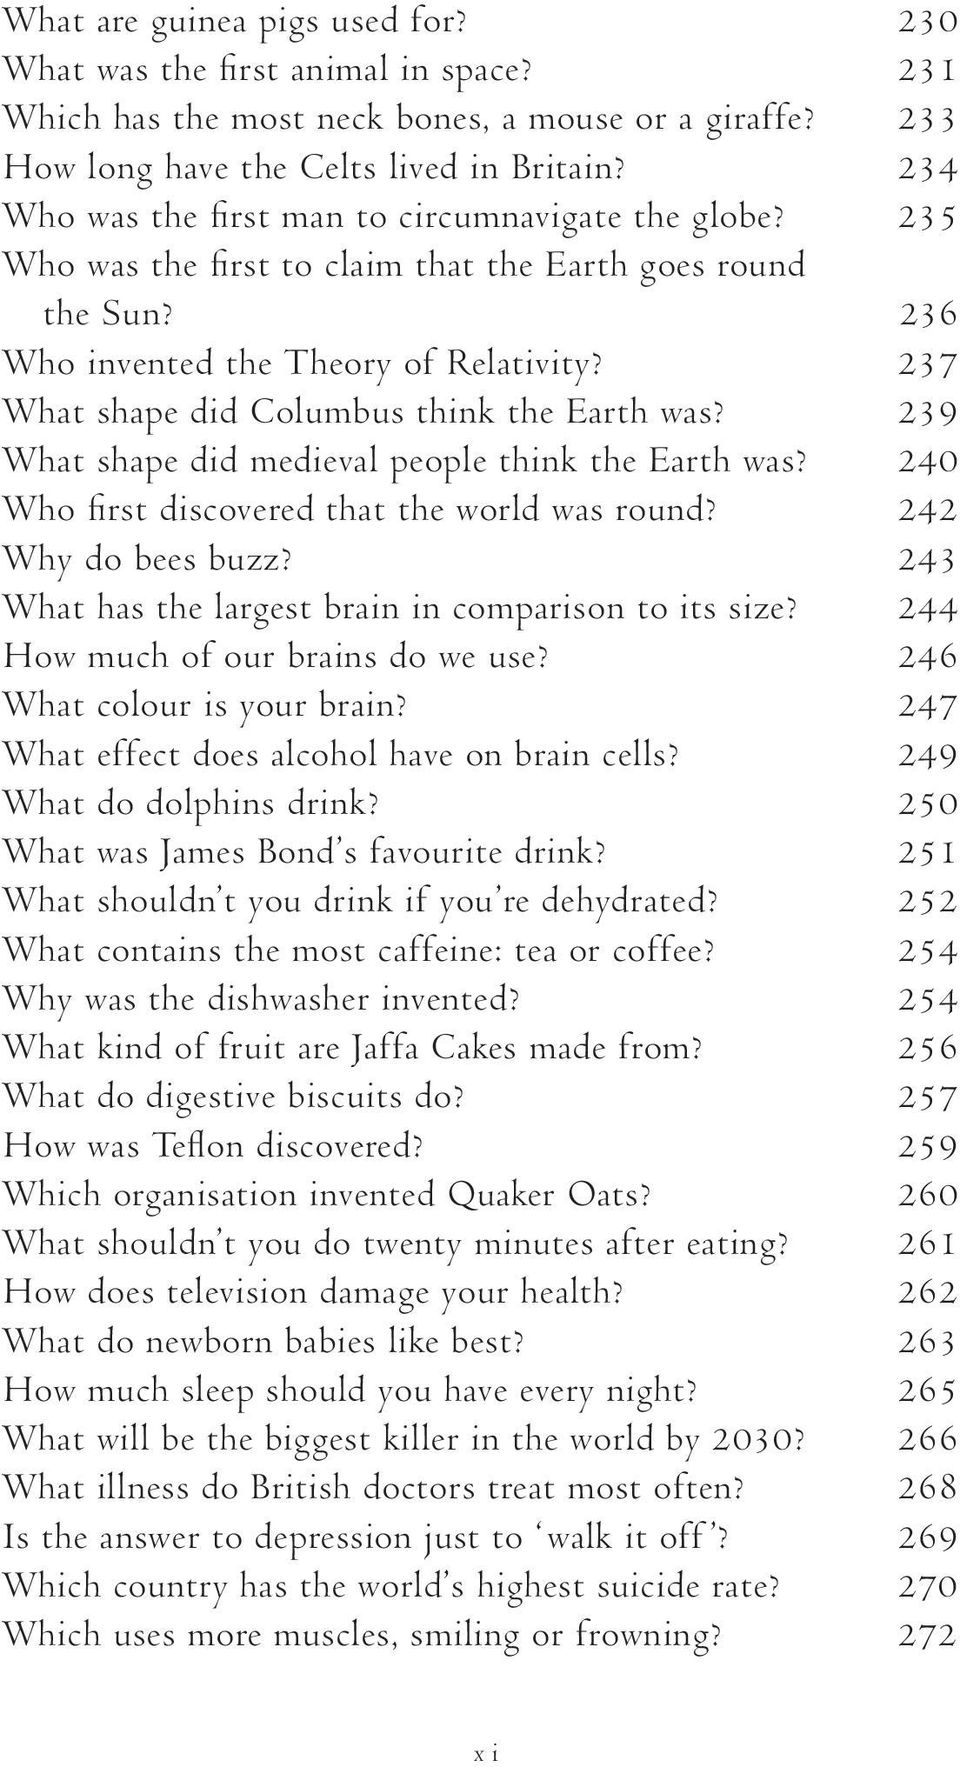 237 What shape did Columbus think the Earth was? 239 What shape did medieval people think the Earth was? 240 Who first discovered that the world was round? 242 Why do bees buzz?